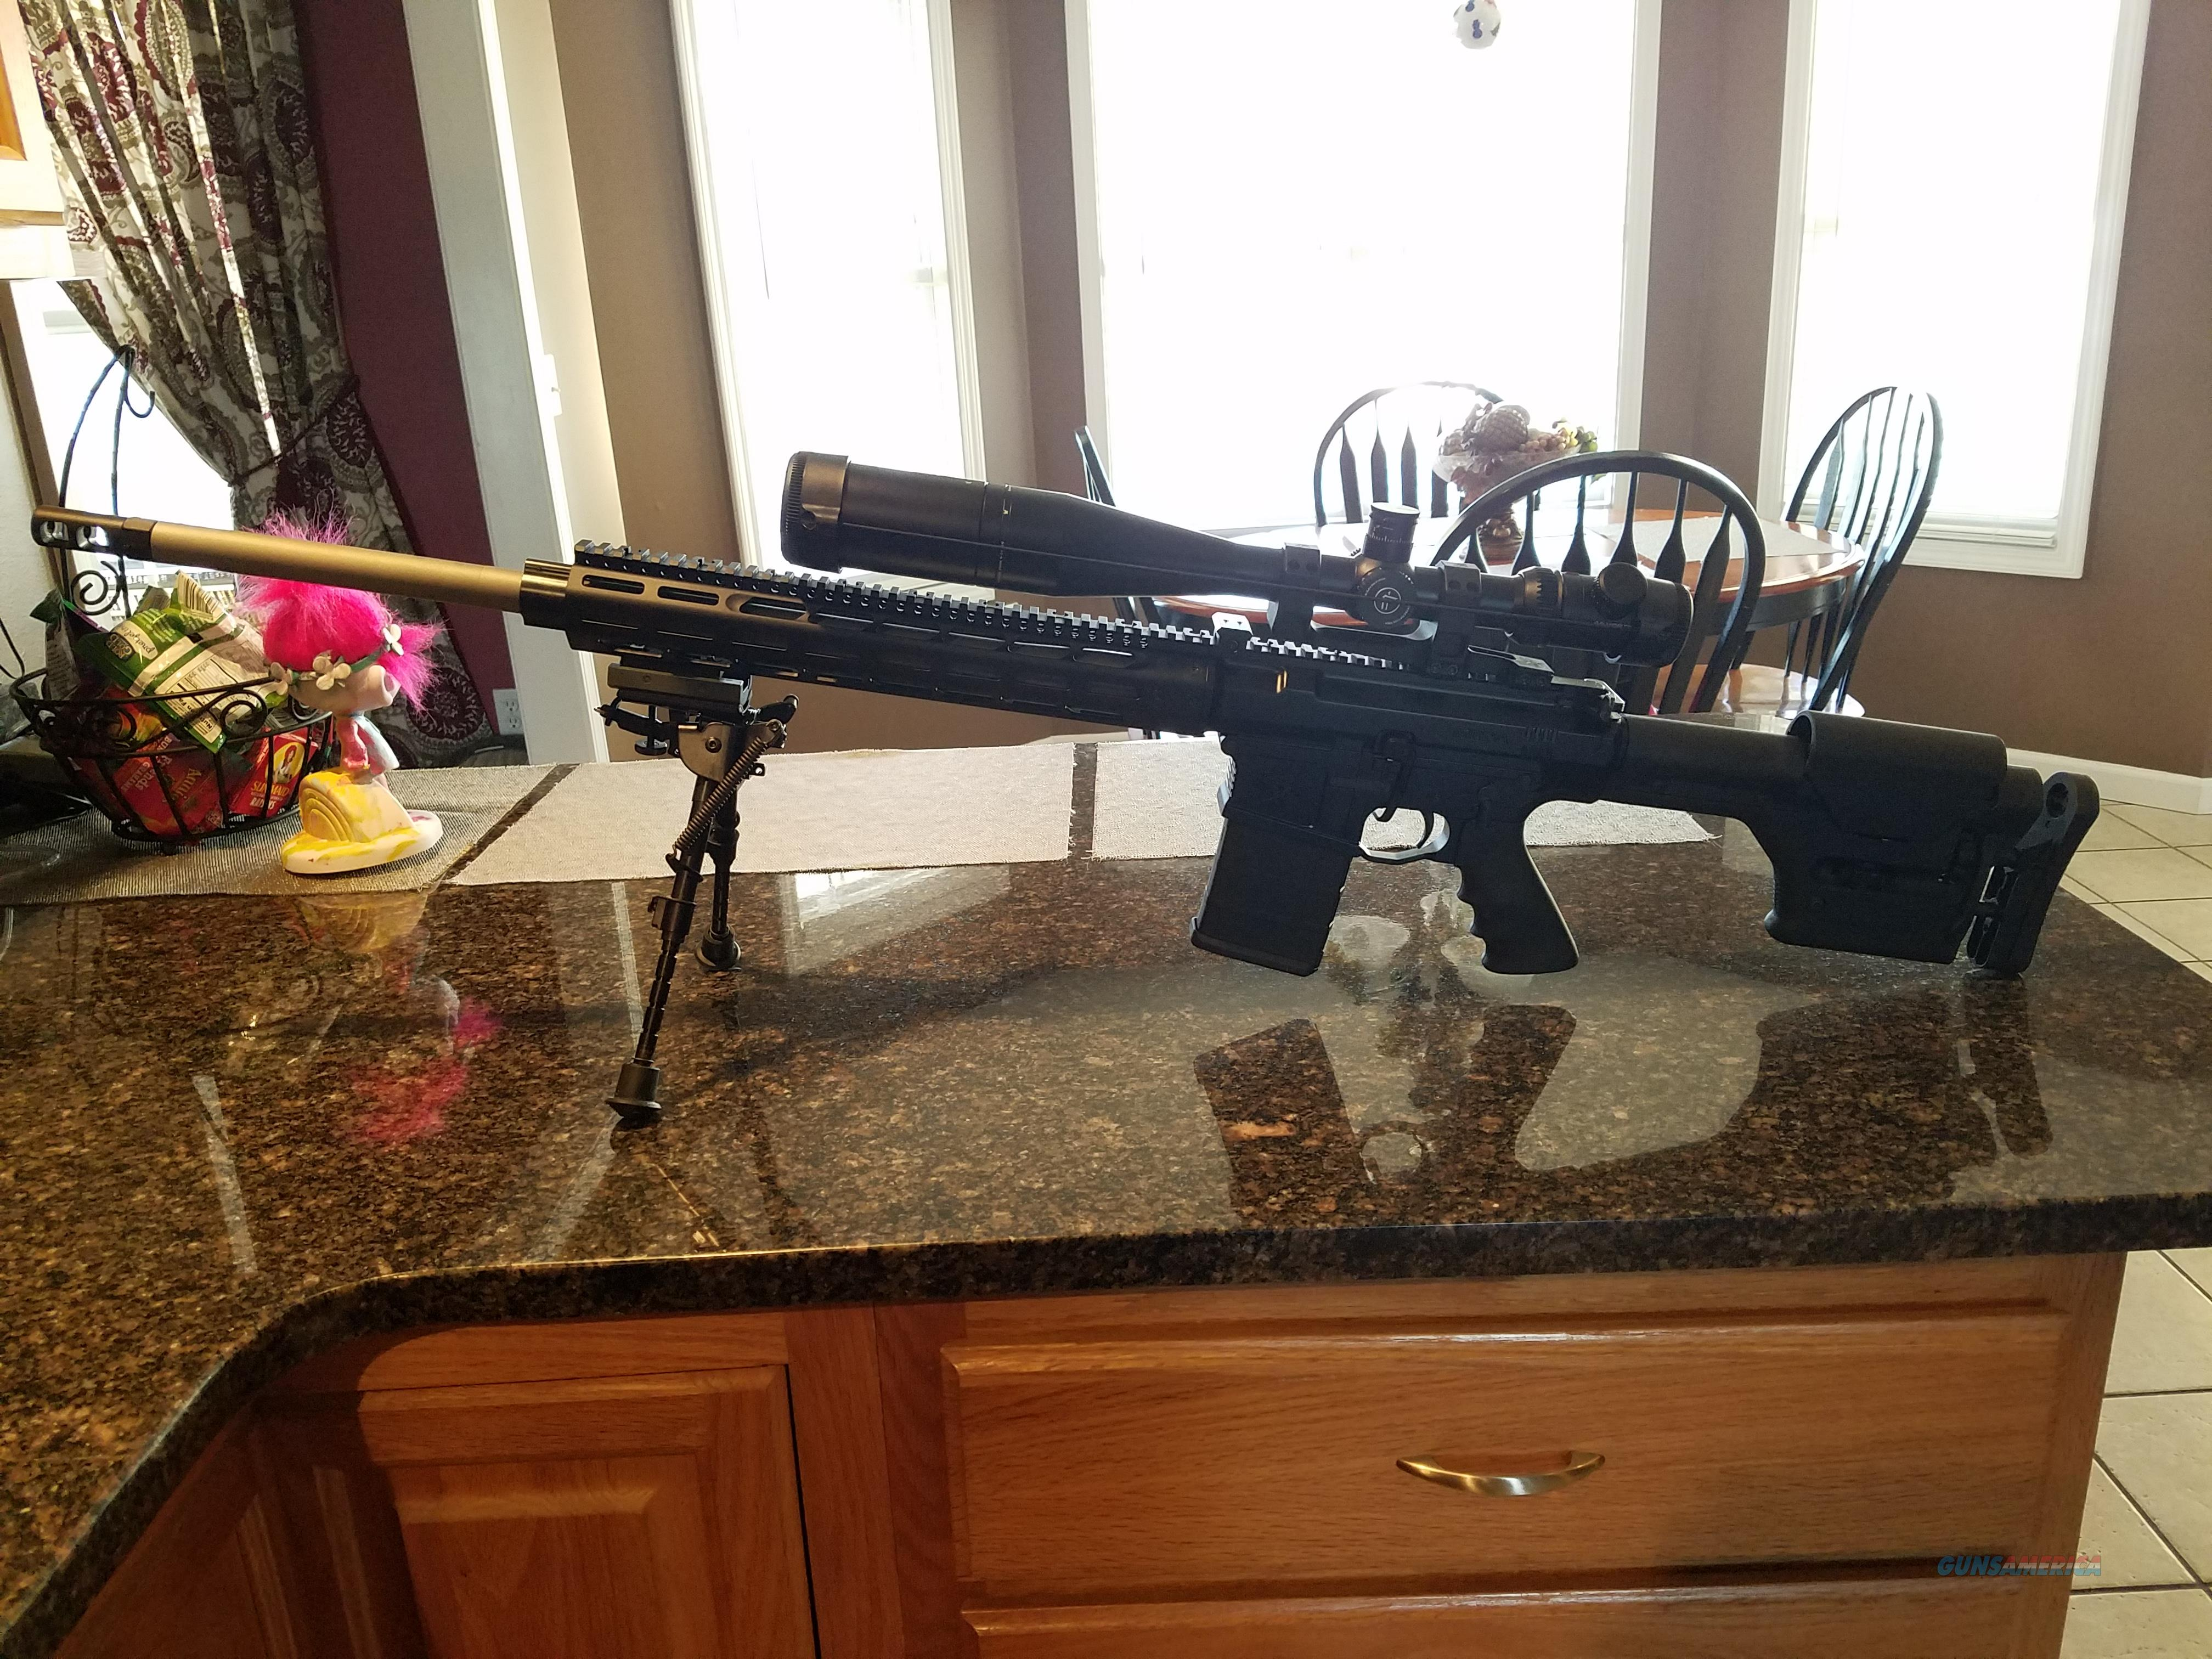 MEGA ARMS MEGALITHIC 6.5 CREEDMOOR AR10  Guns > Rifles > MN Misc Rifles